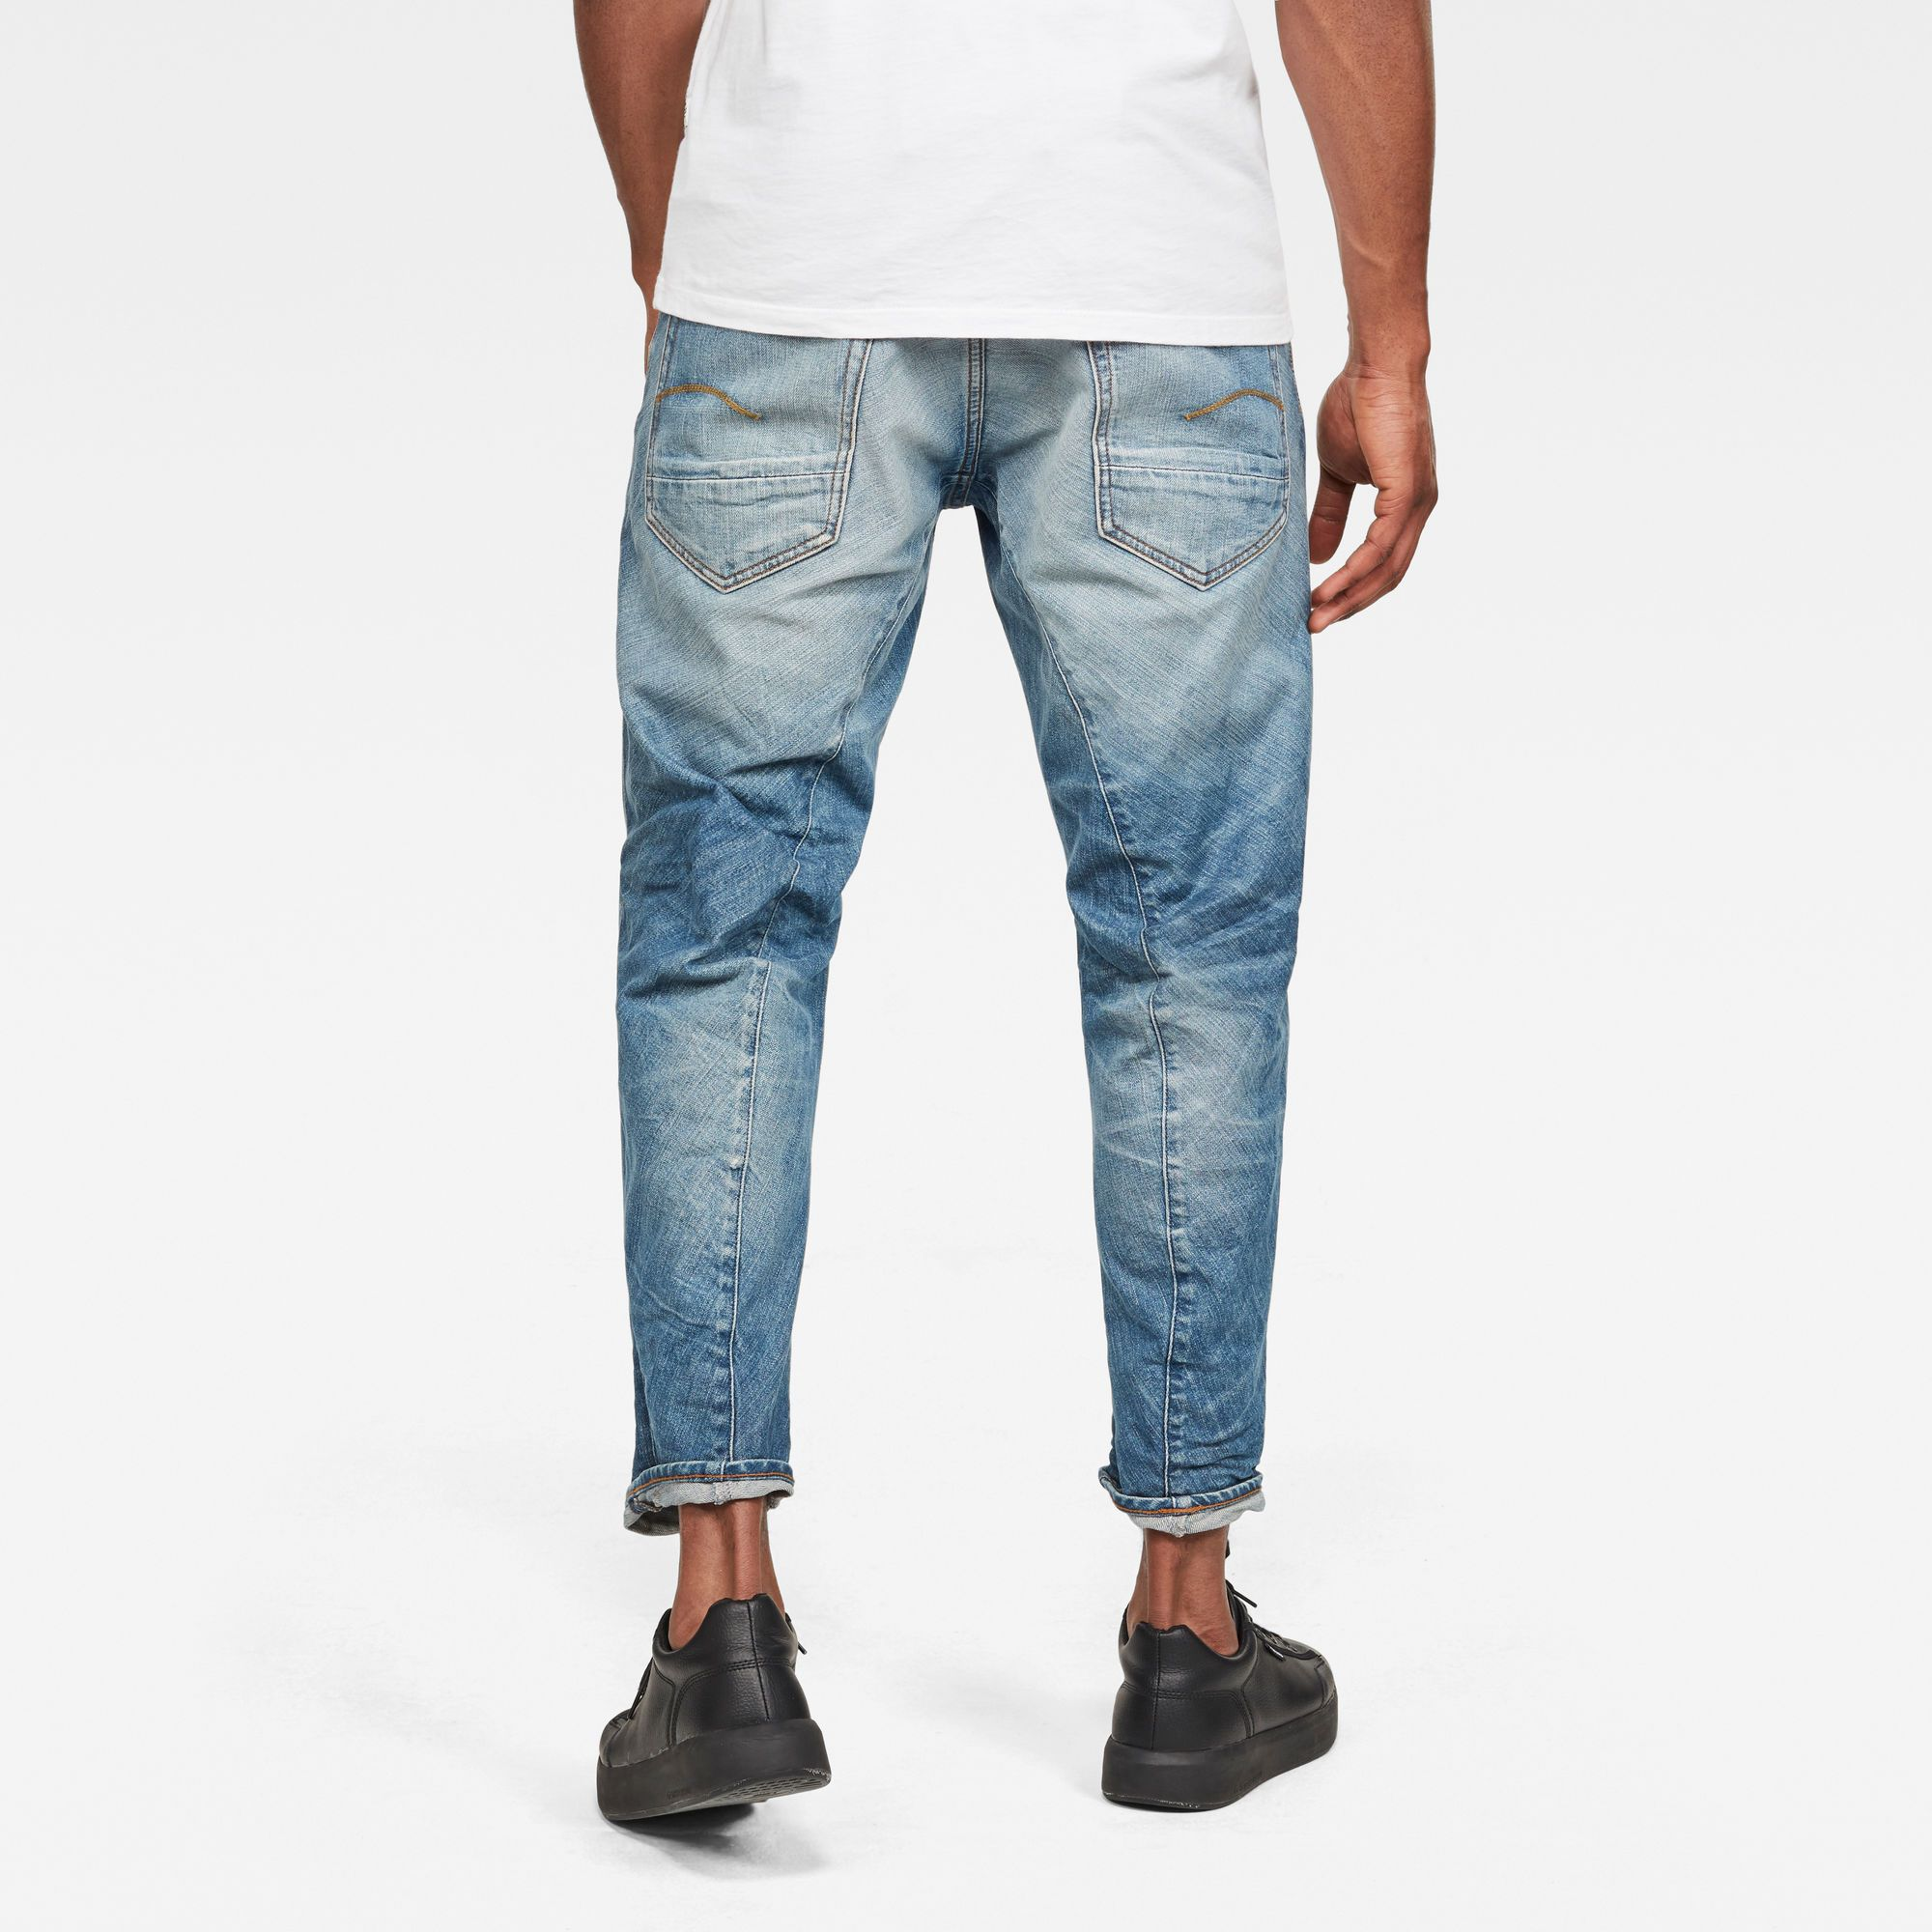 G-Star RAW 5650 3D Relaxed Tapered Jeans